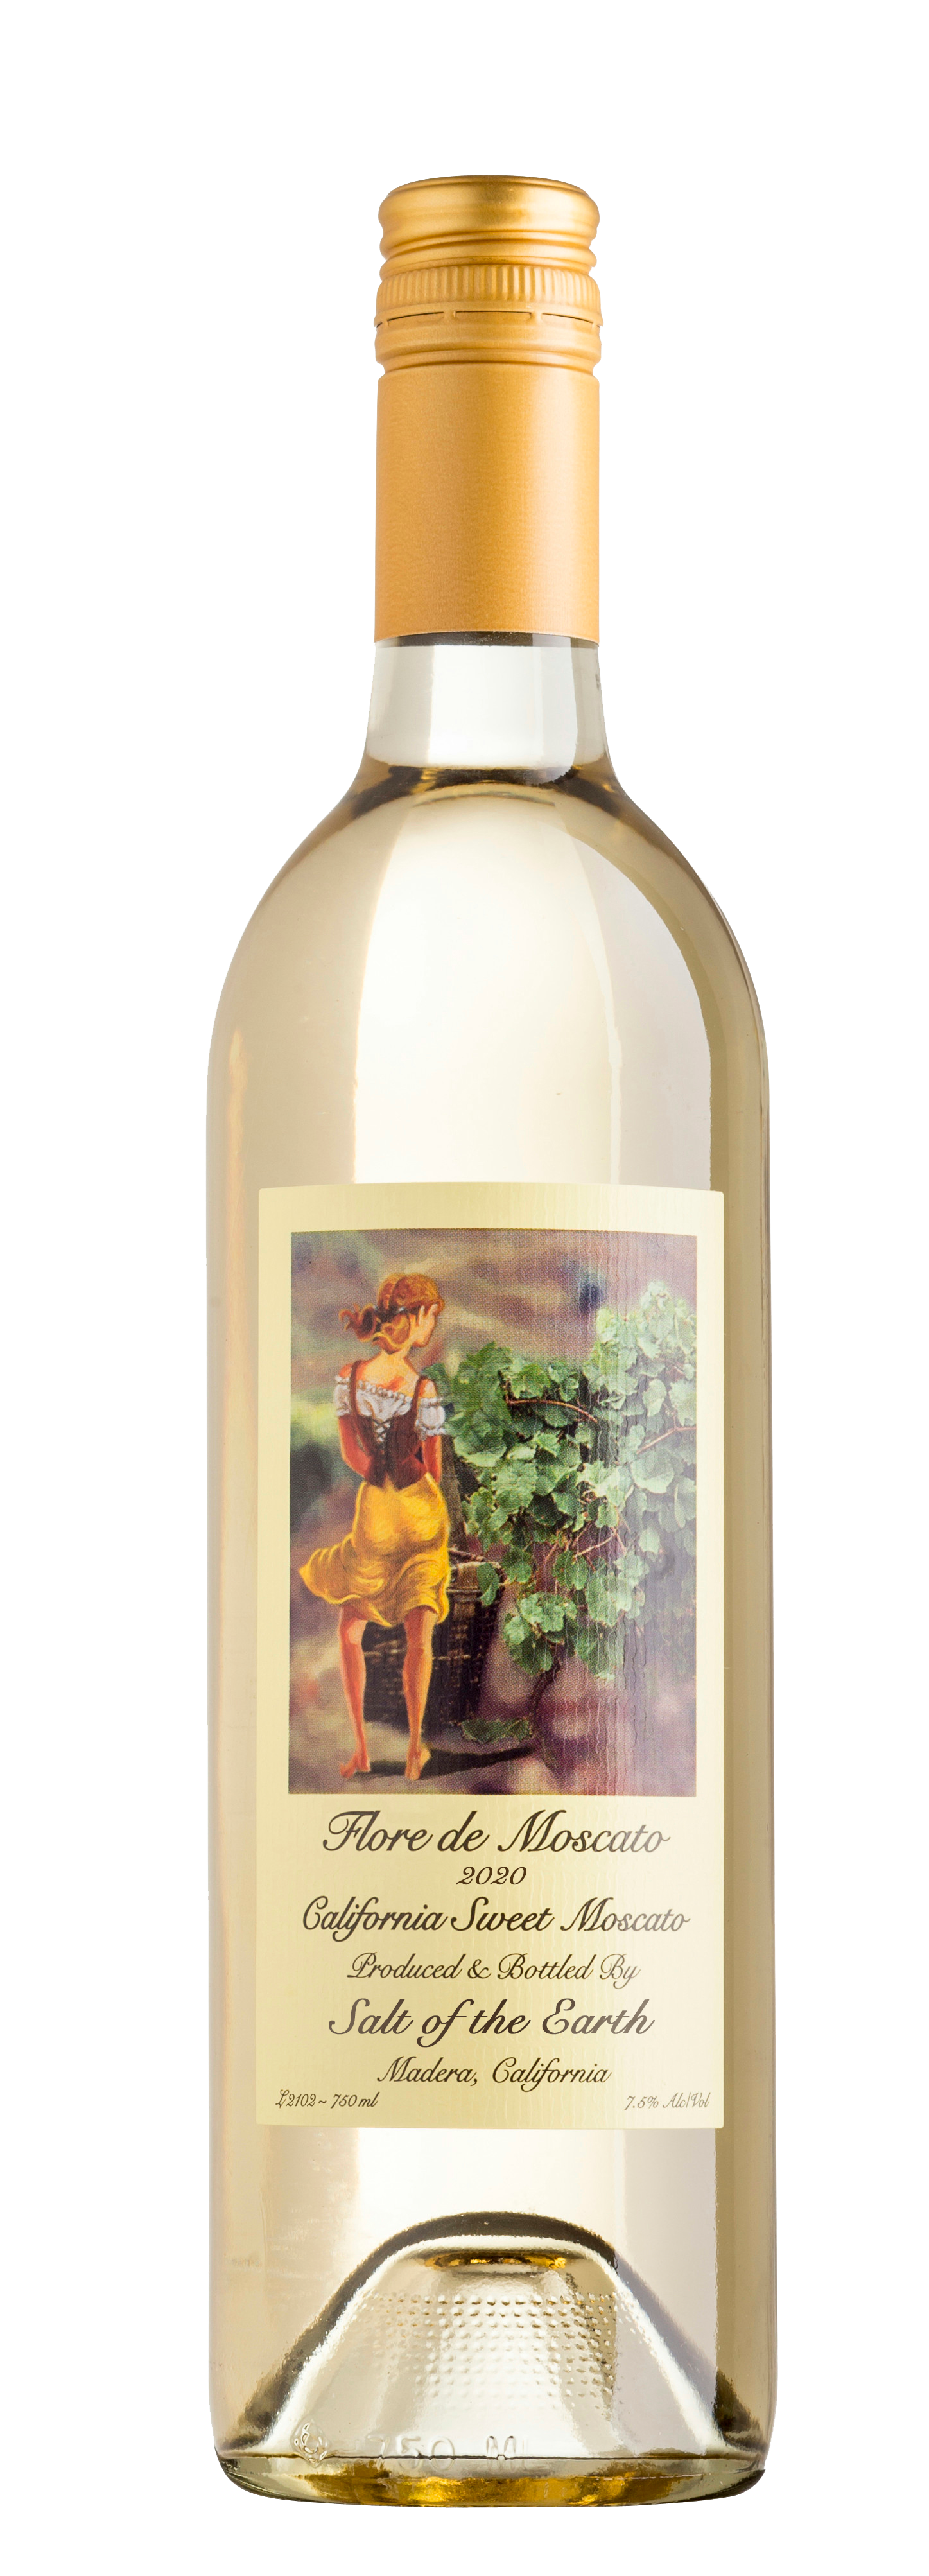 Bottle shot of 2020 vintage Salt of the Earth Wine Flore de Moscato